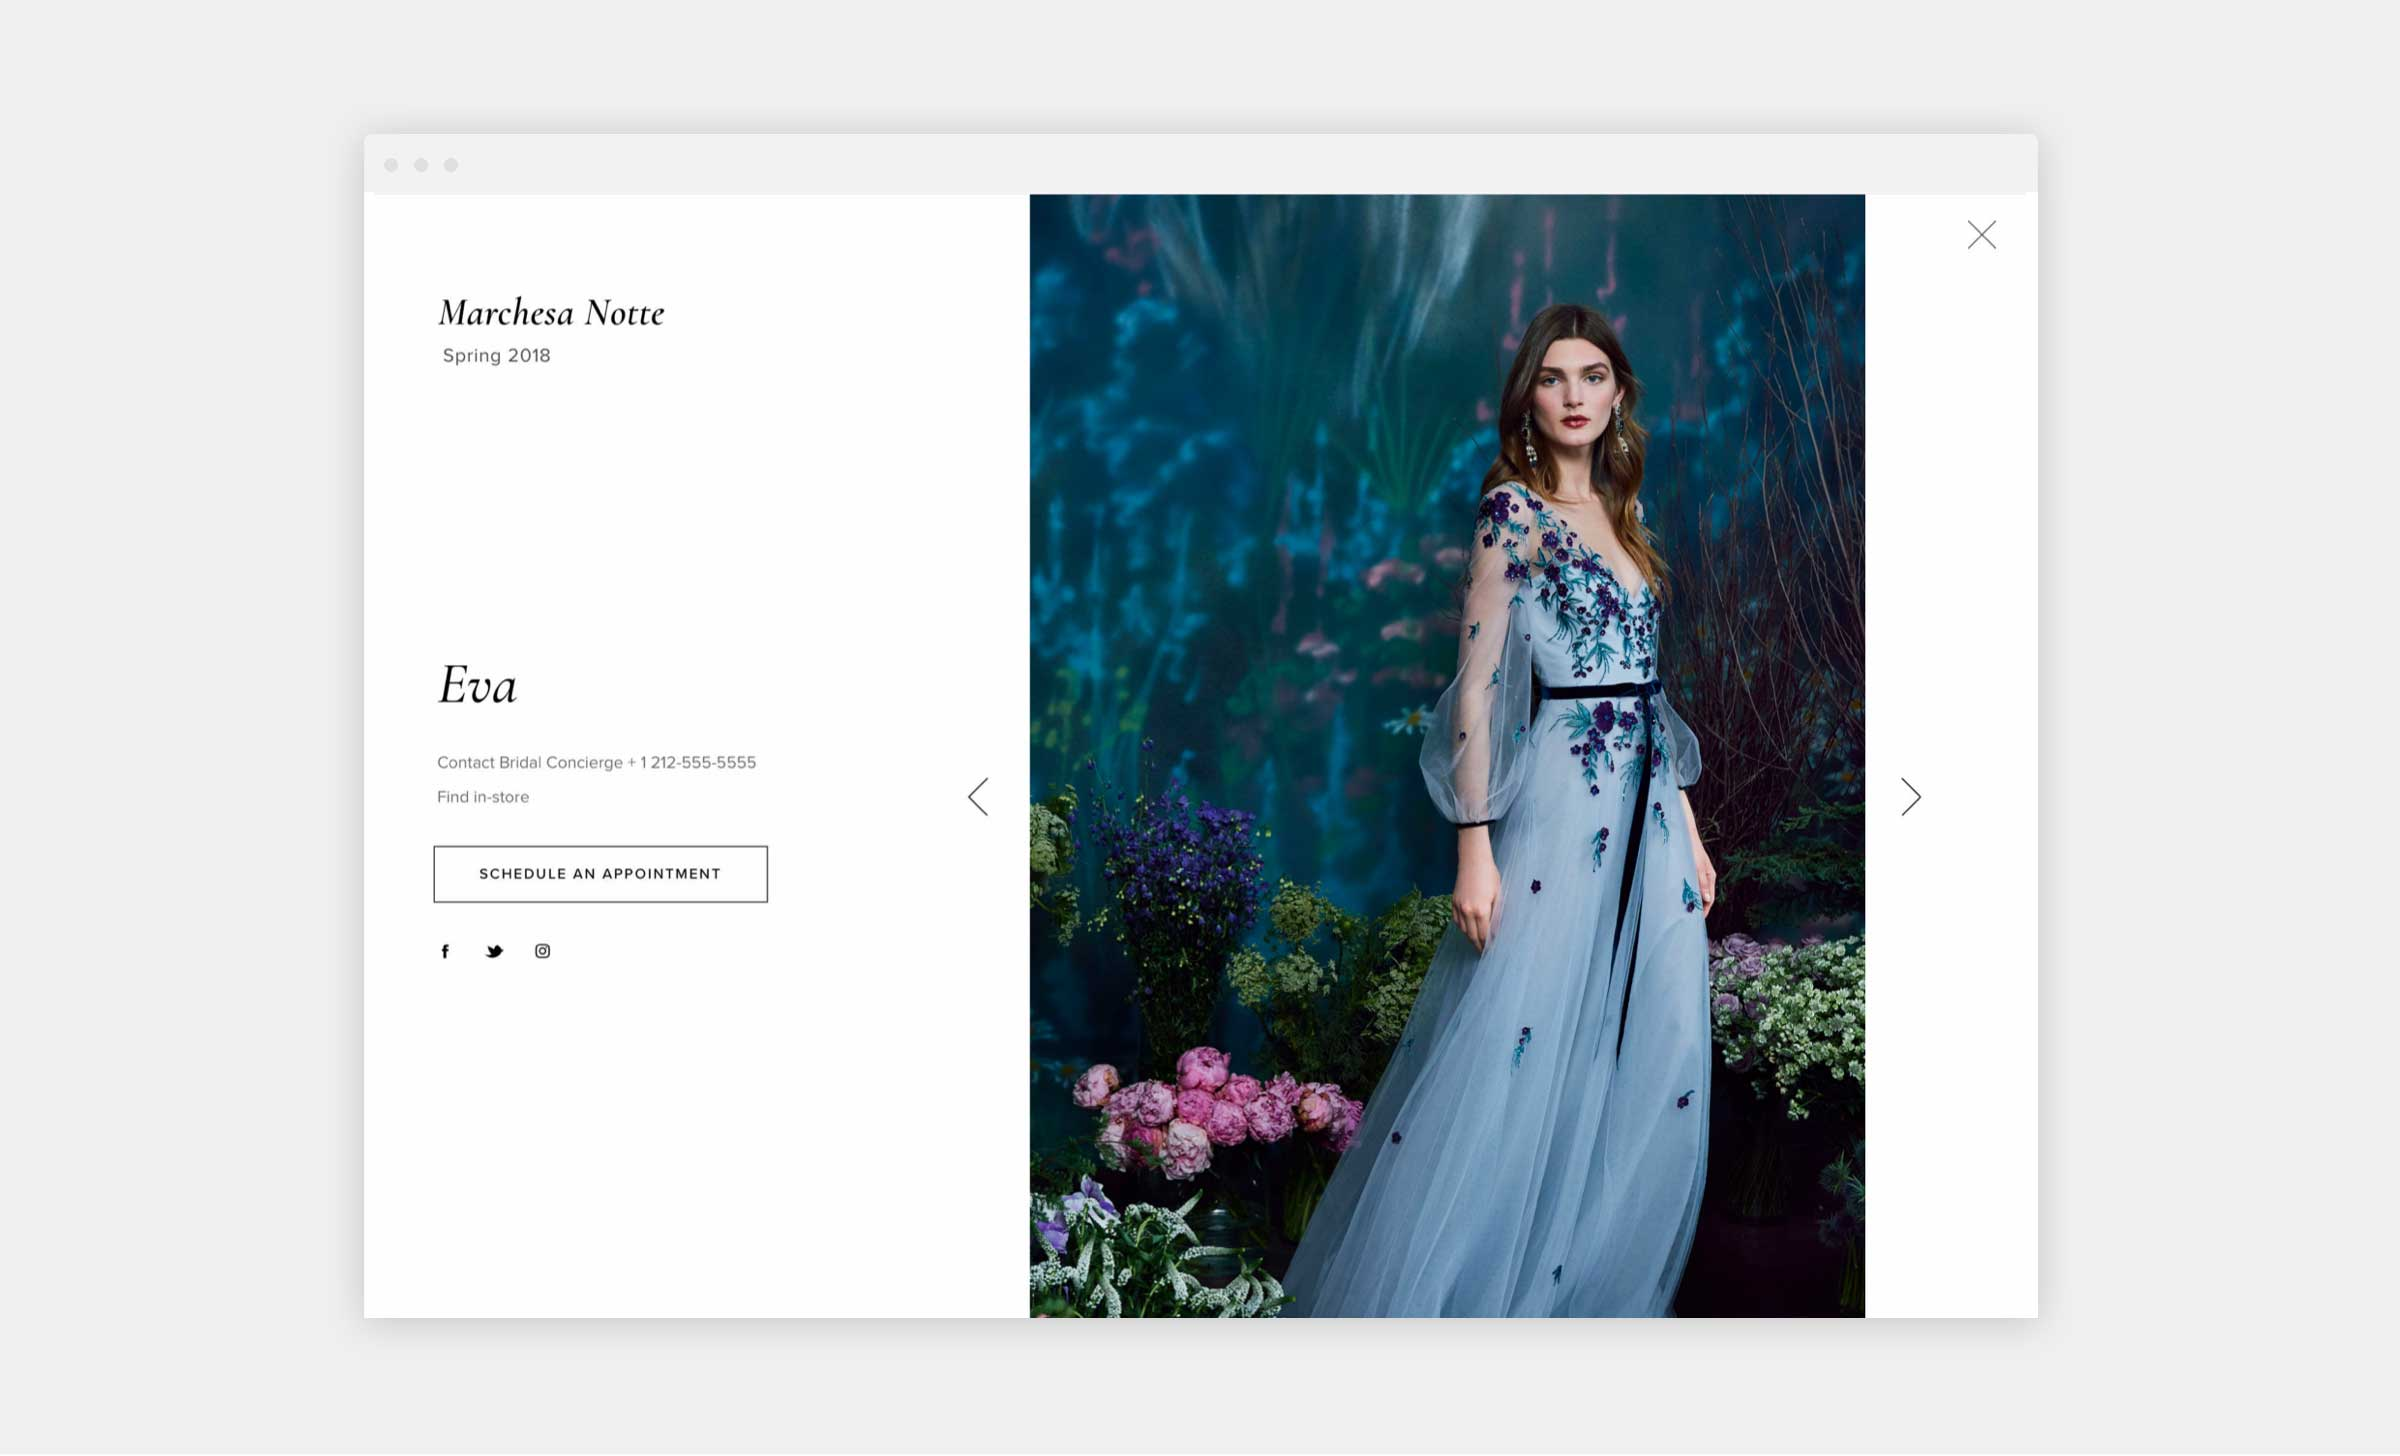 marchesa website bridal appointment page